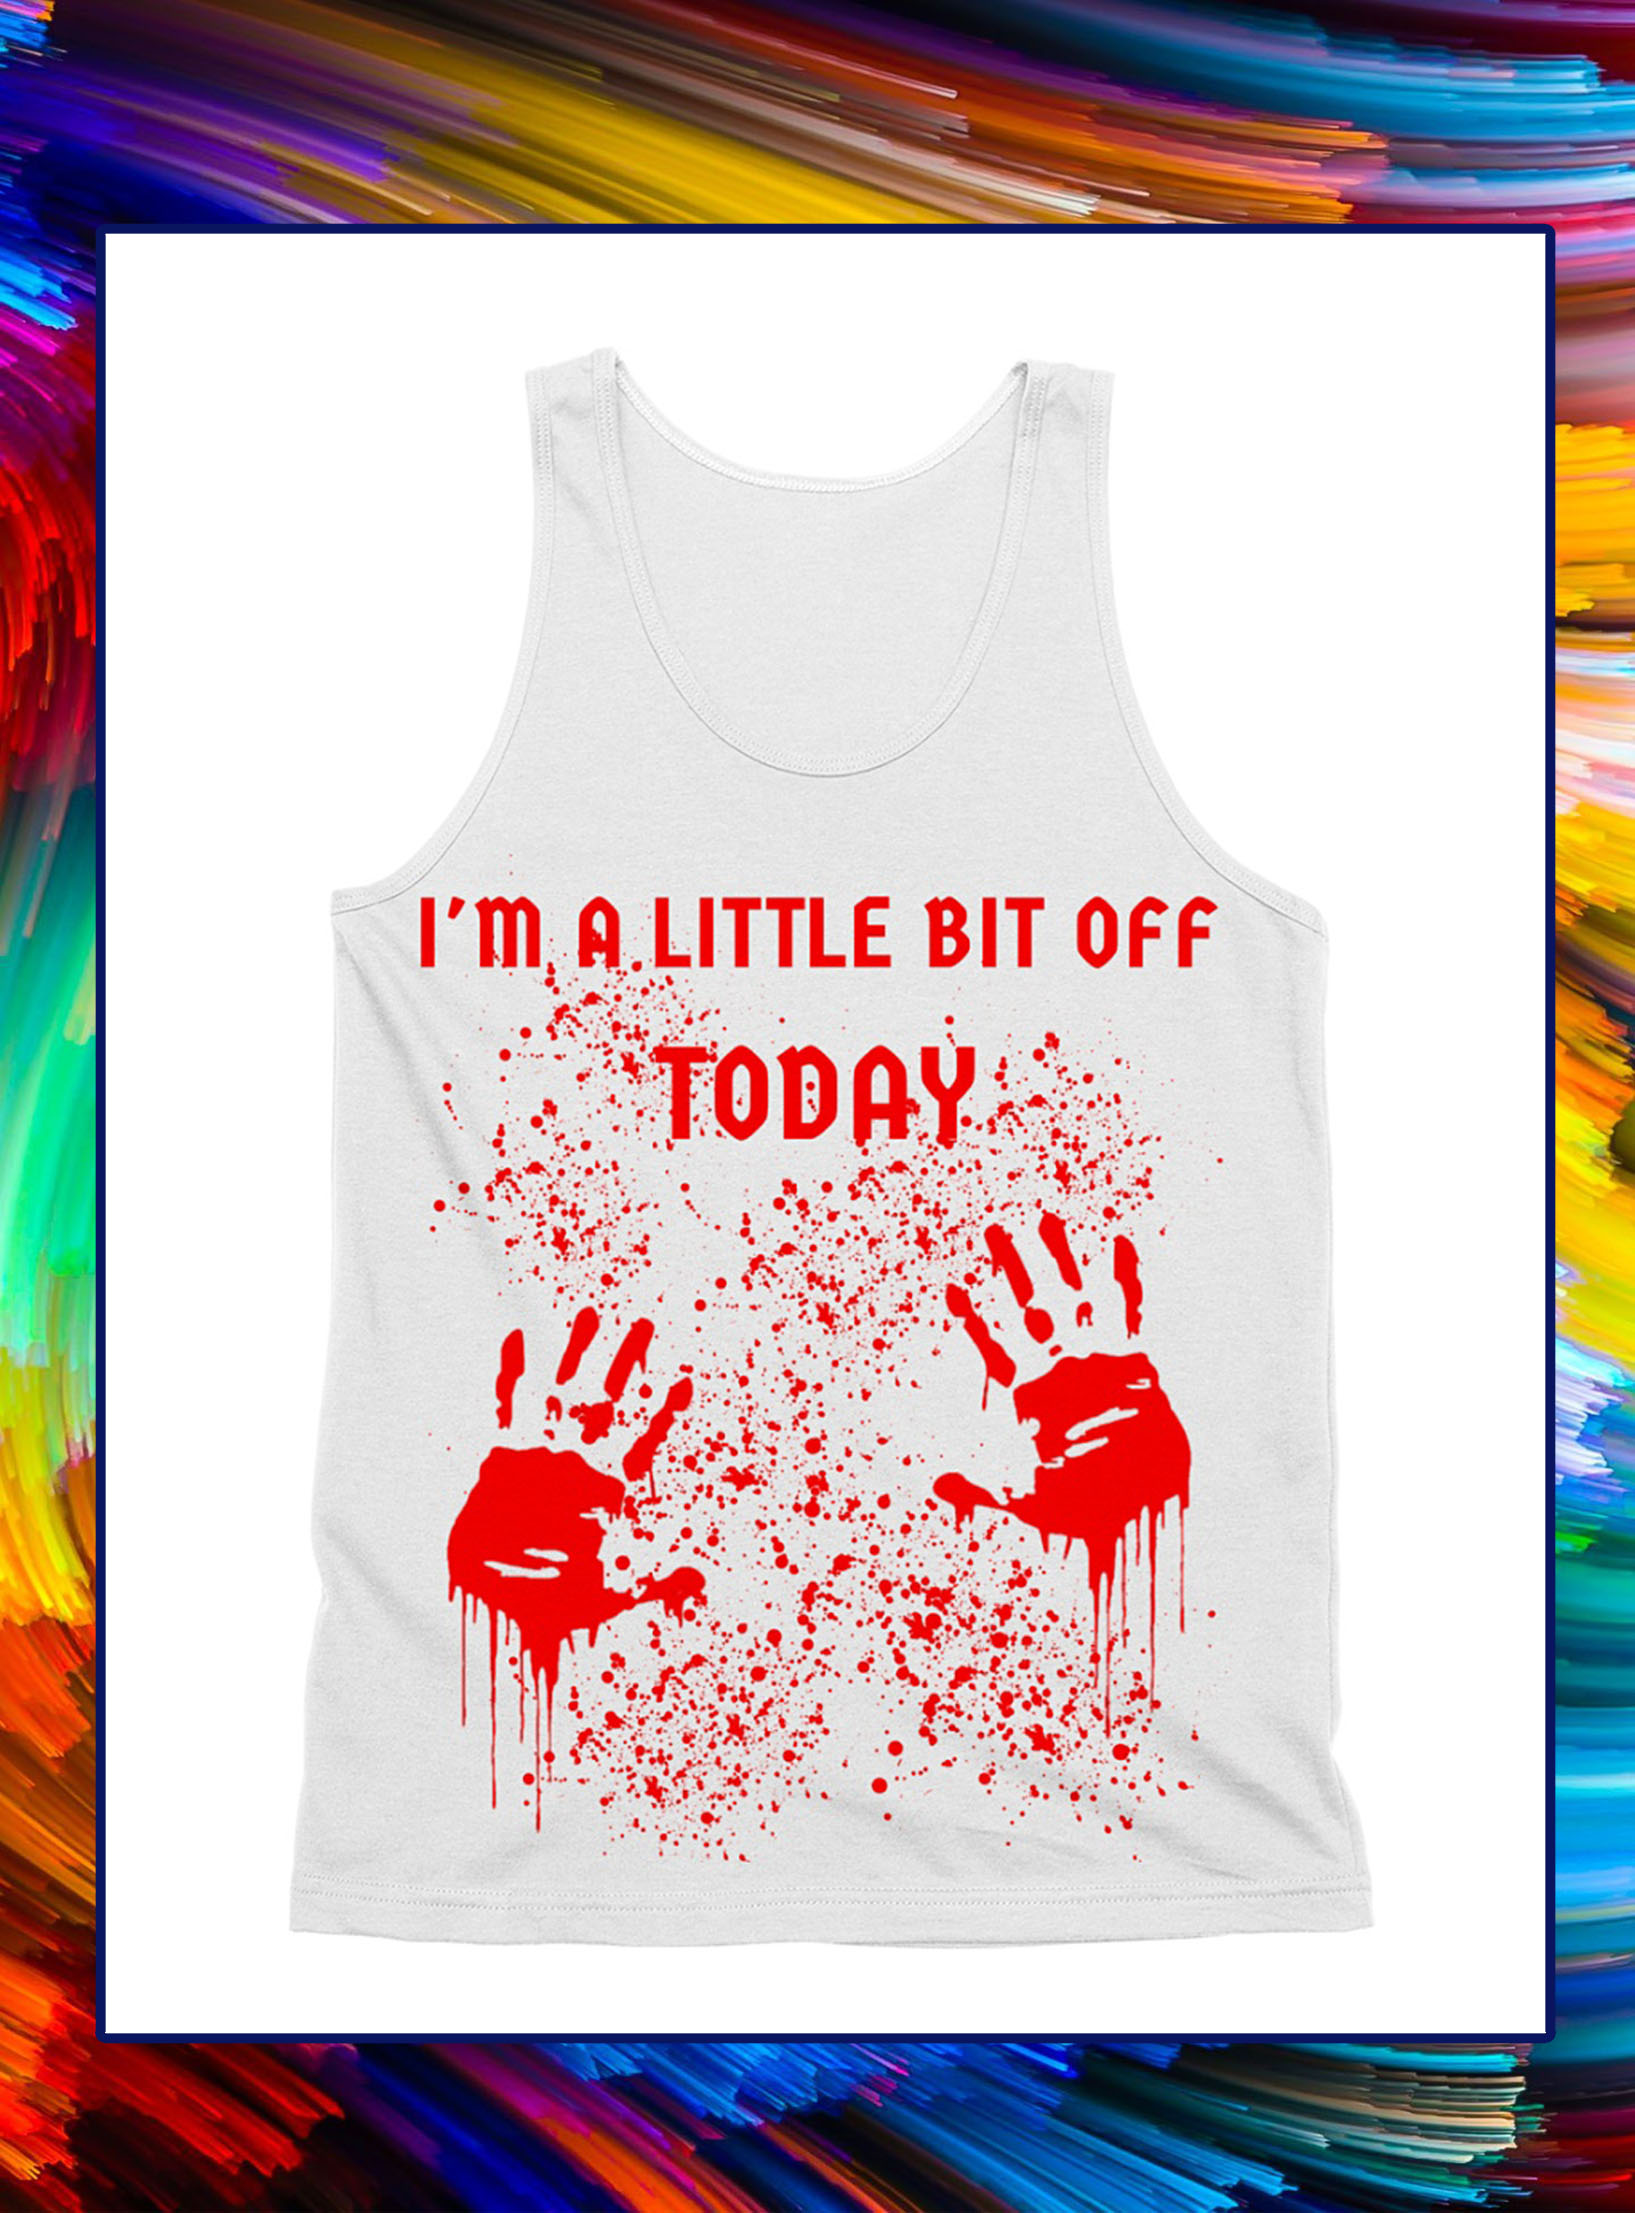 I'm a little bit off today blood all over tank top